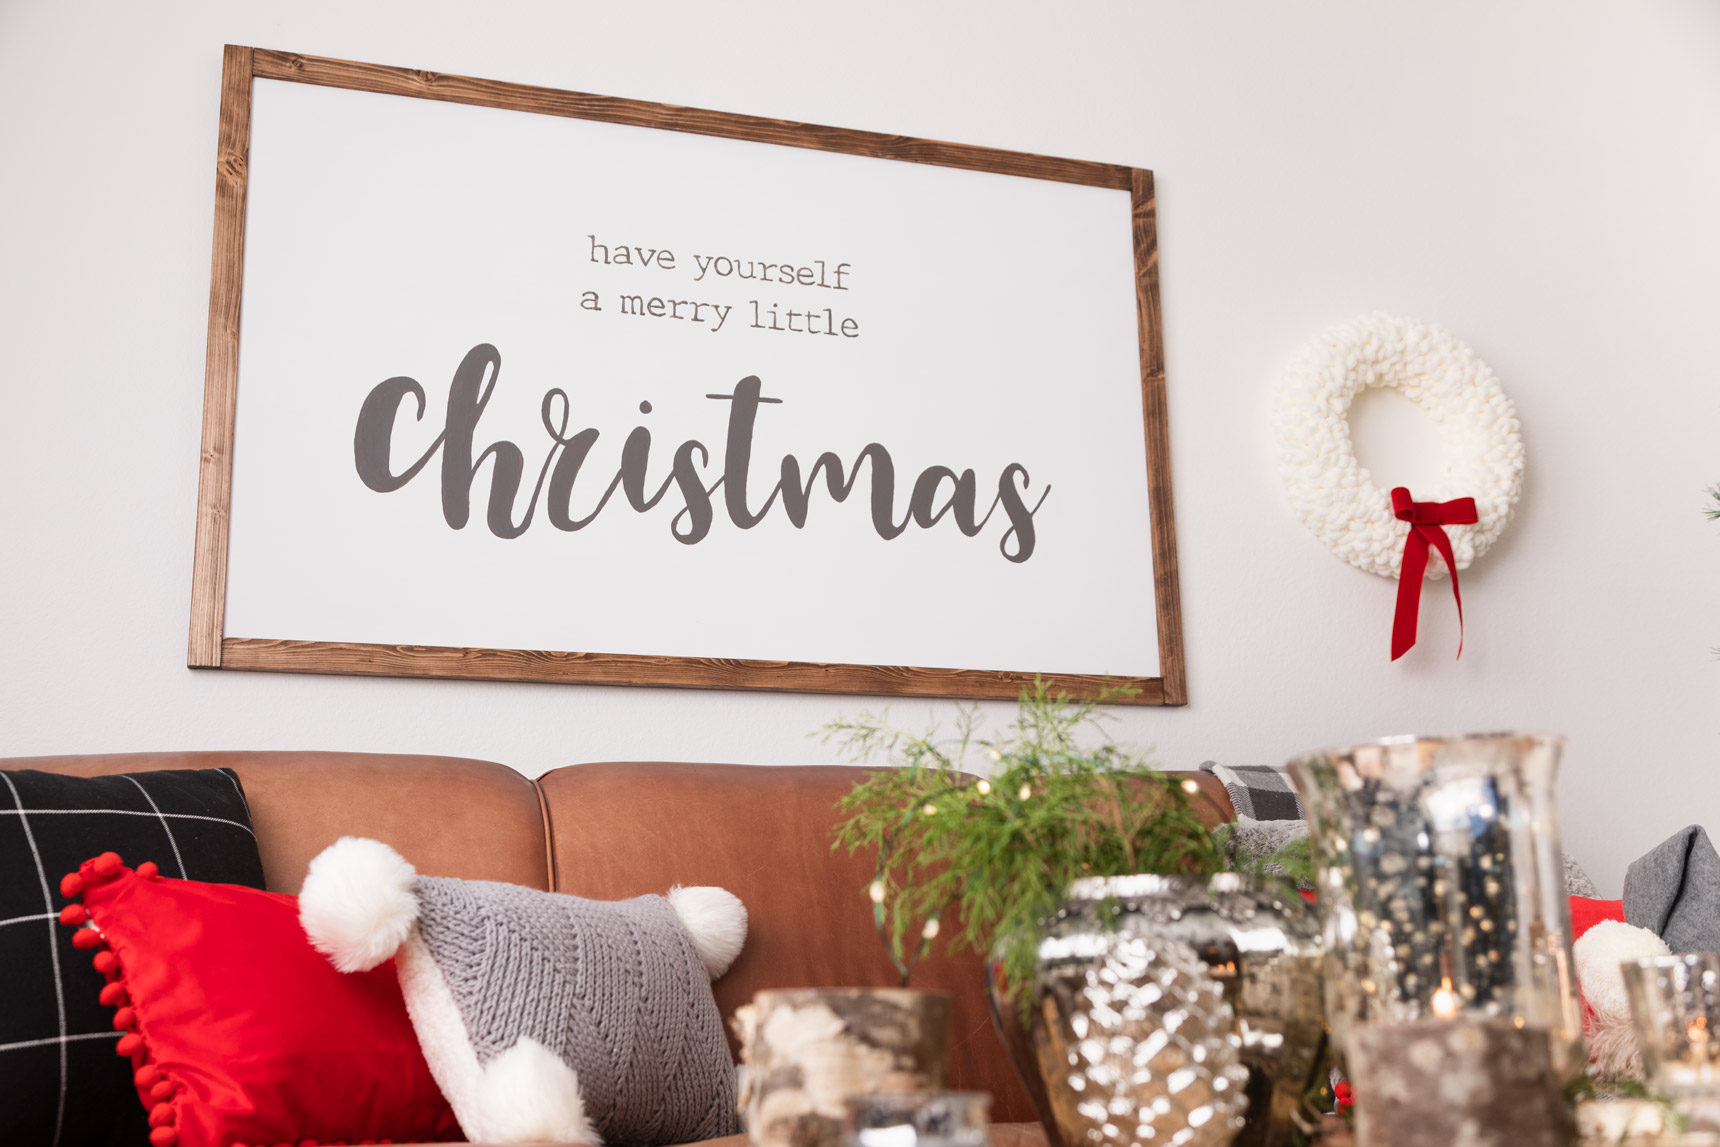 Farmhouse Style DIY Christmas Decorating Ideas - Painted Signs